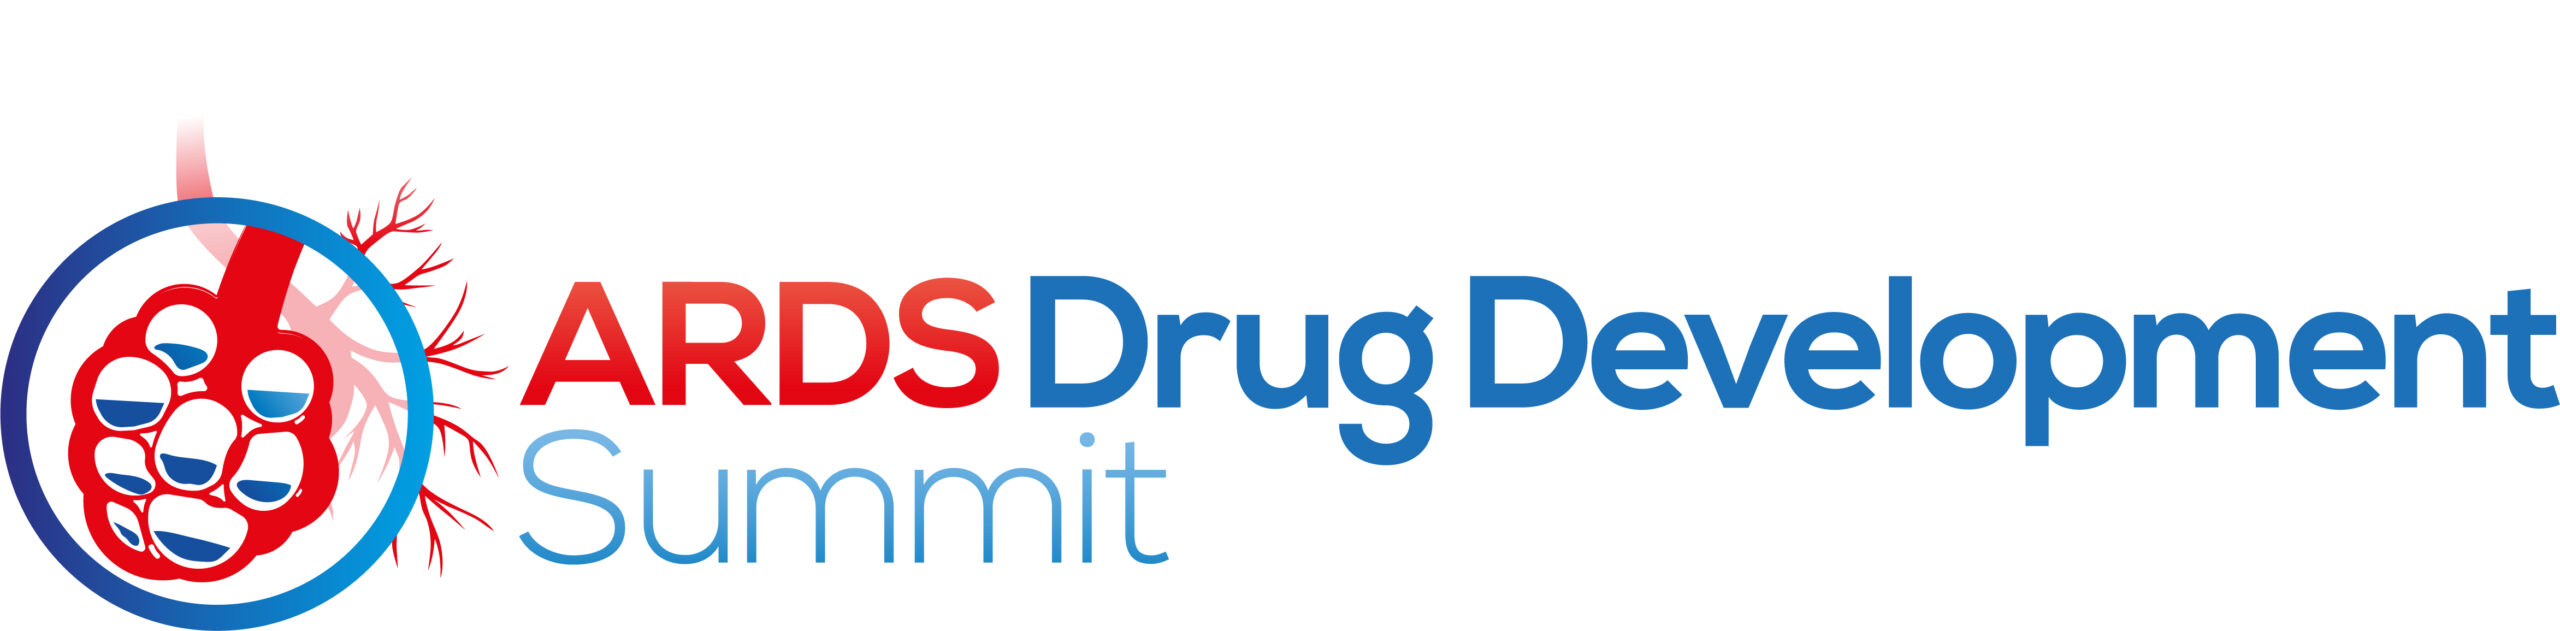 16973 - ARDS Drug Development Summit logo